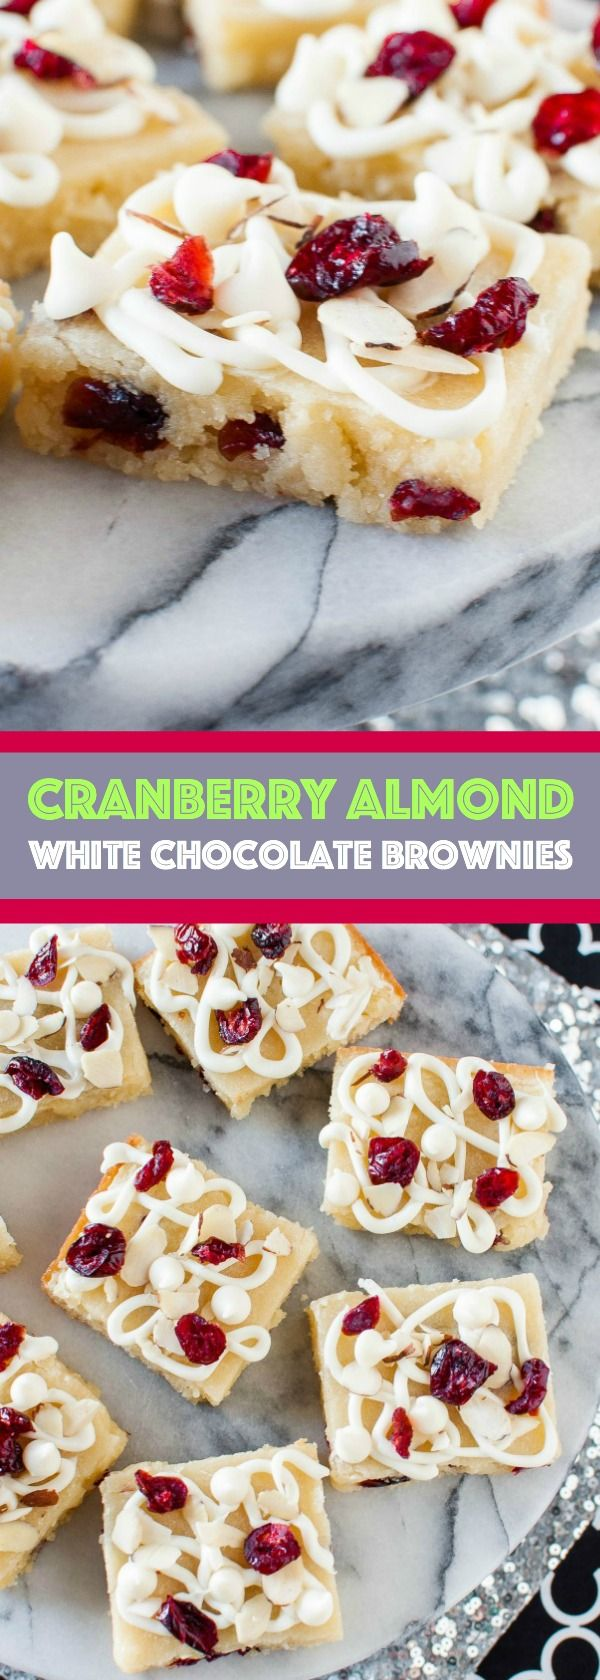 300 Best Bars Brownies Images On Pinterest Chocolates Postres Sq Chunky Bar White 100 Gr Cranberry Almond Chocolate Are Chewy And Fudgy Completely Irresistible This Is A